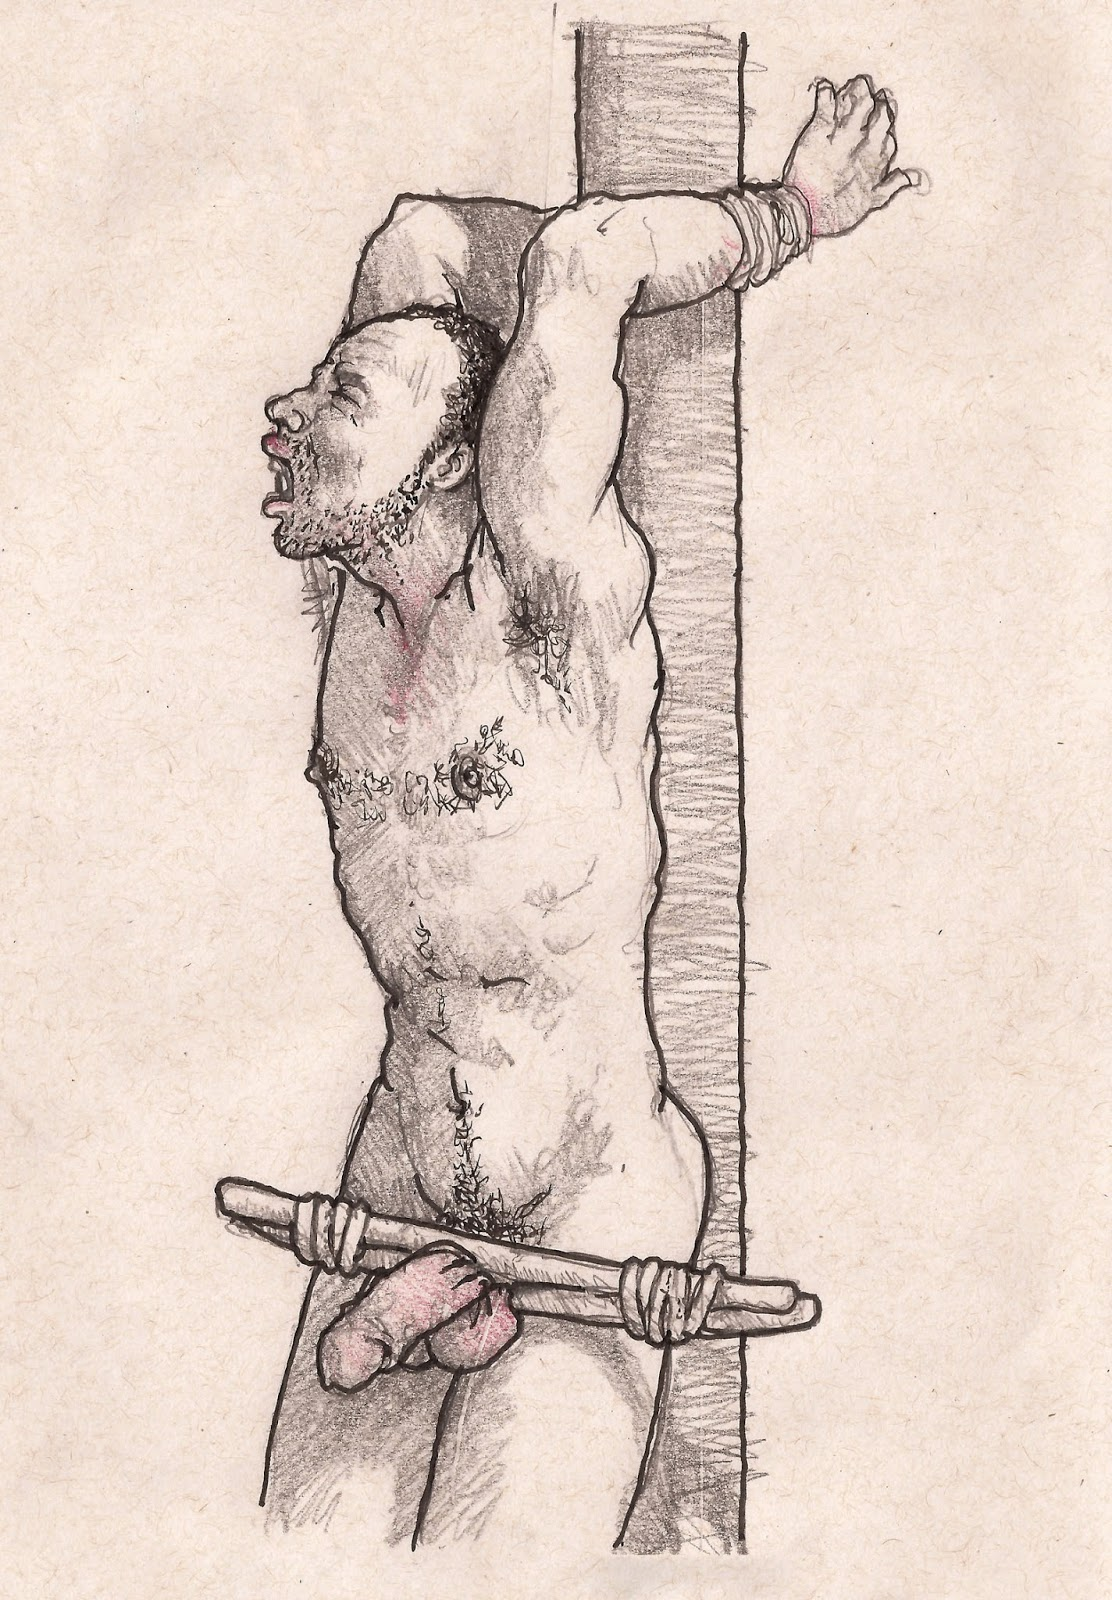 Bdsm female crucifixion drawing here